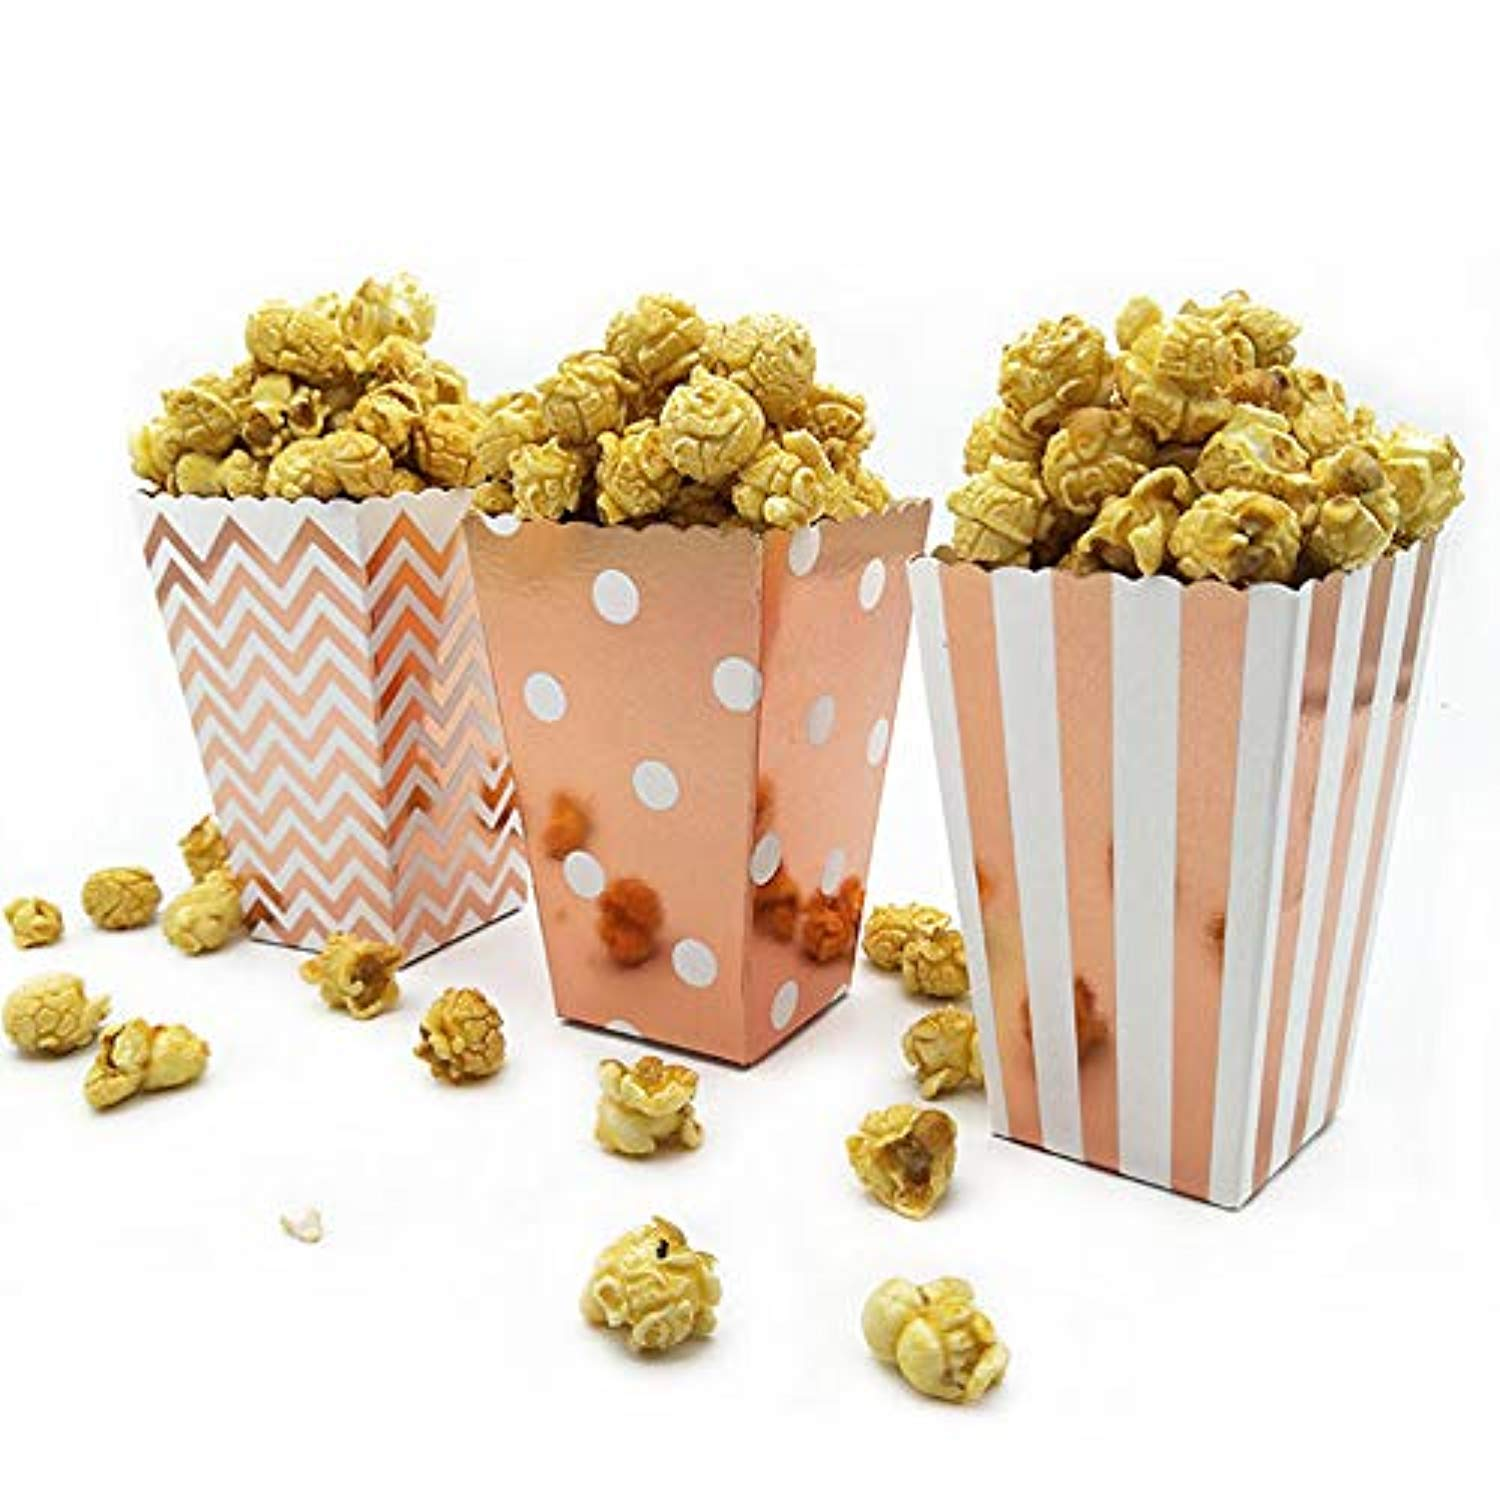 Mini Poprcorn Boxes 100 Pack Rose Gold Paper Popcorn Snack Containers Treat Box for Wedding Party Bridal Shower Birthday Movies by BALANSOHO (Image #2)